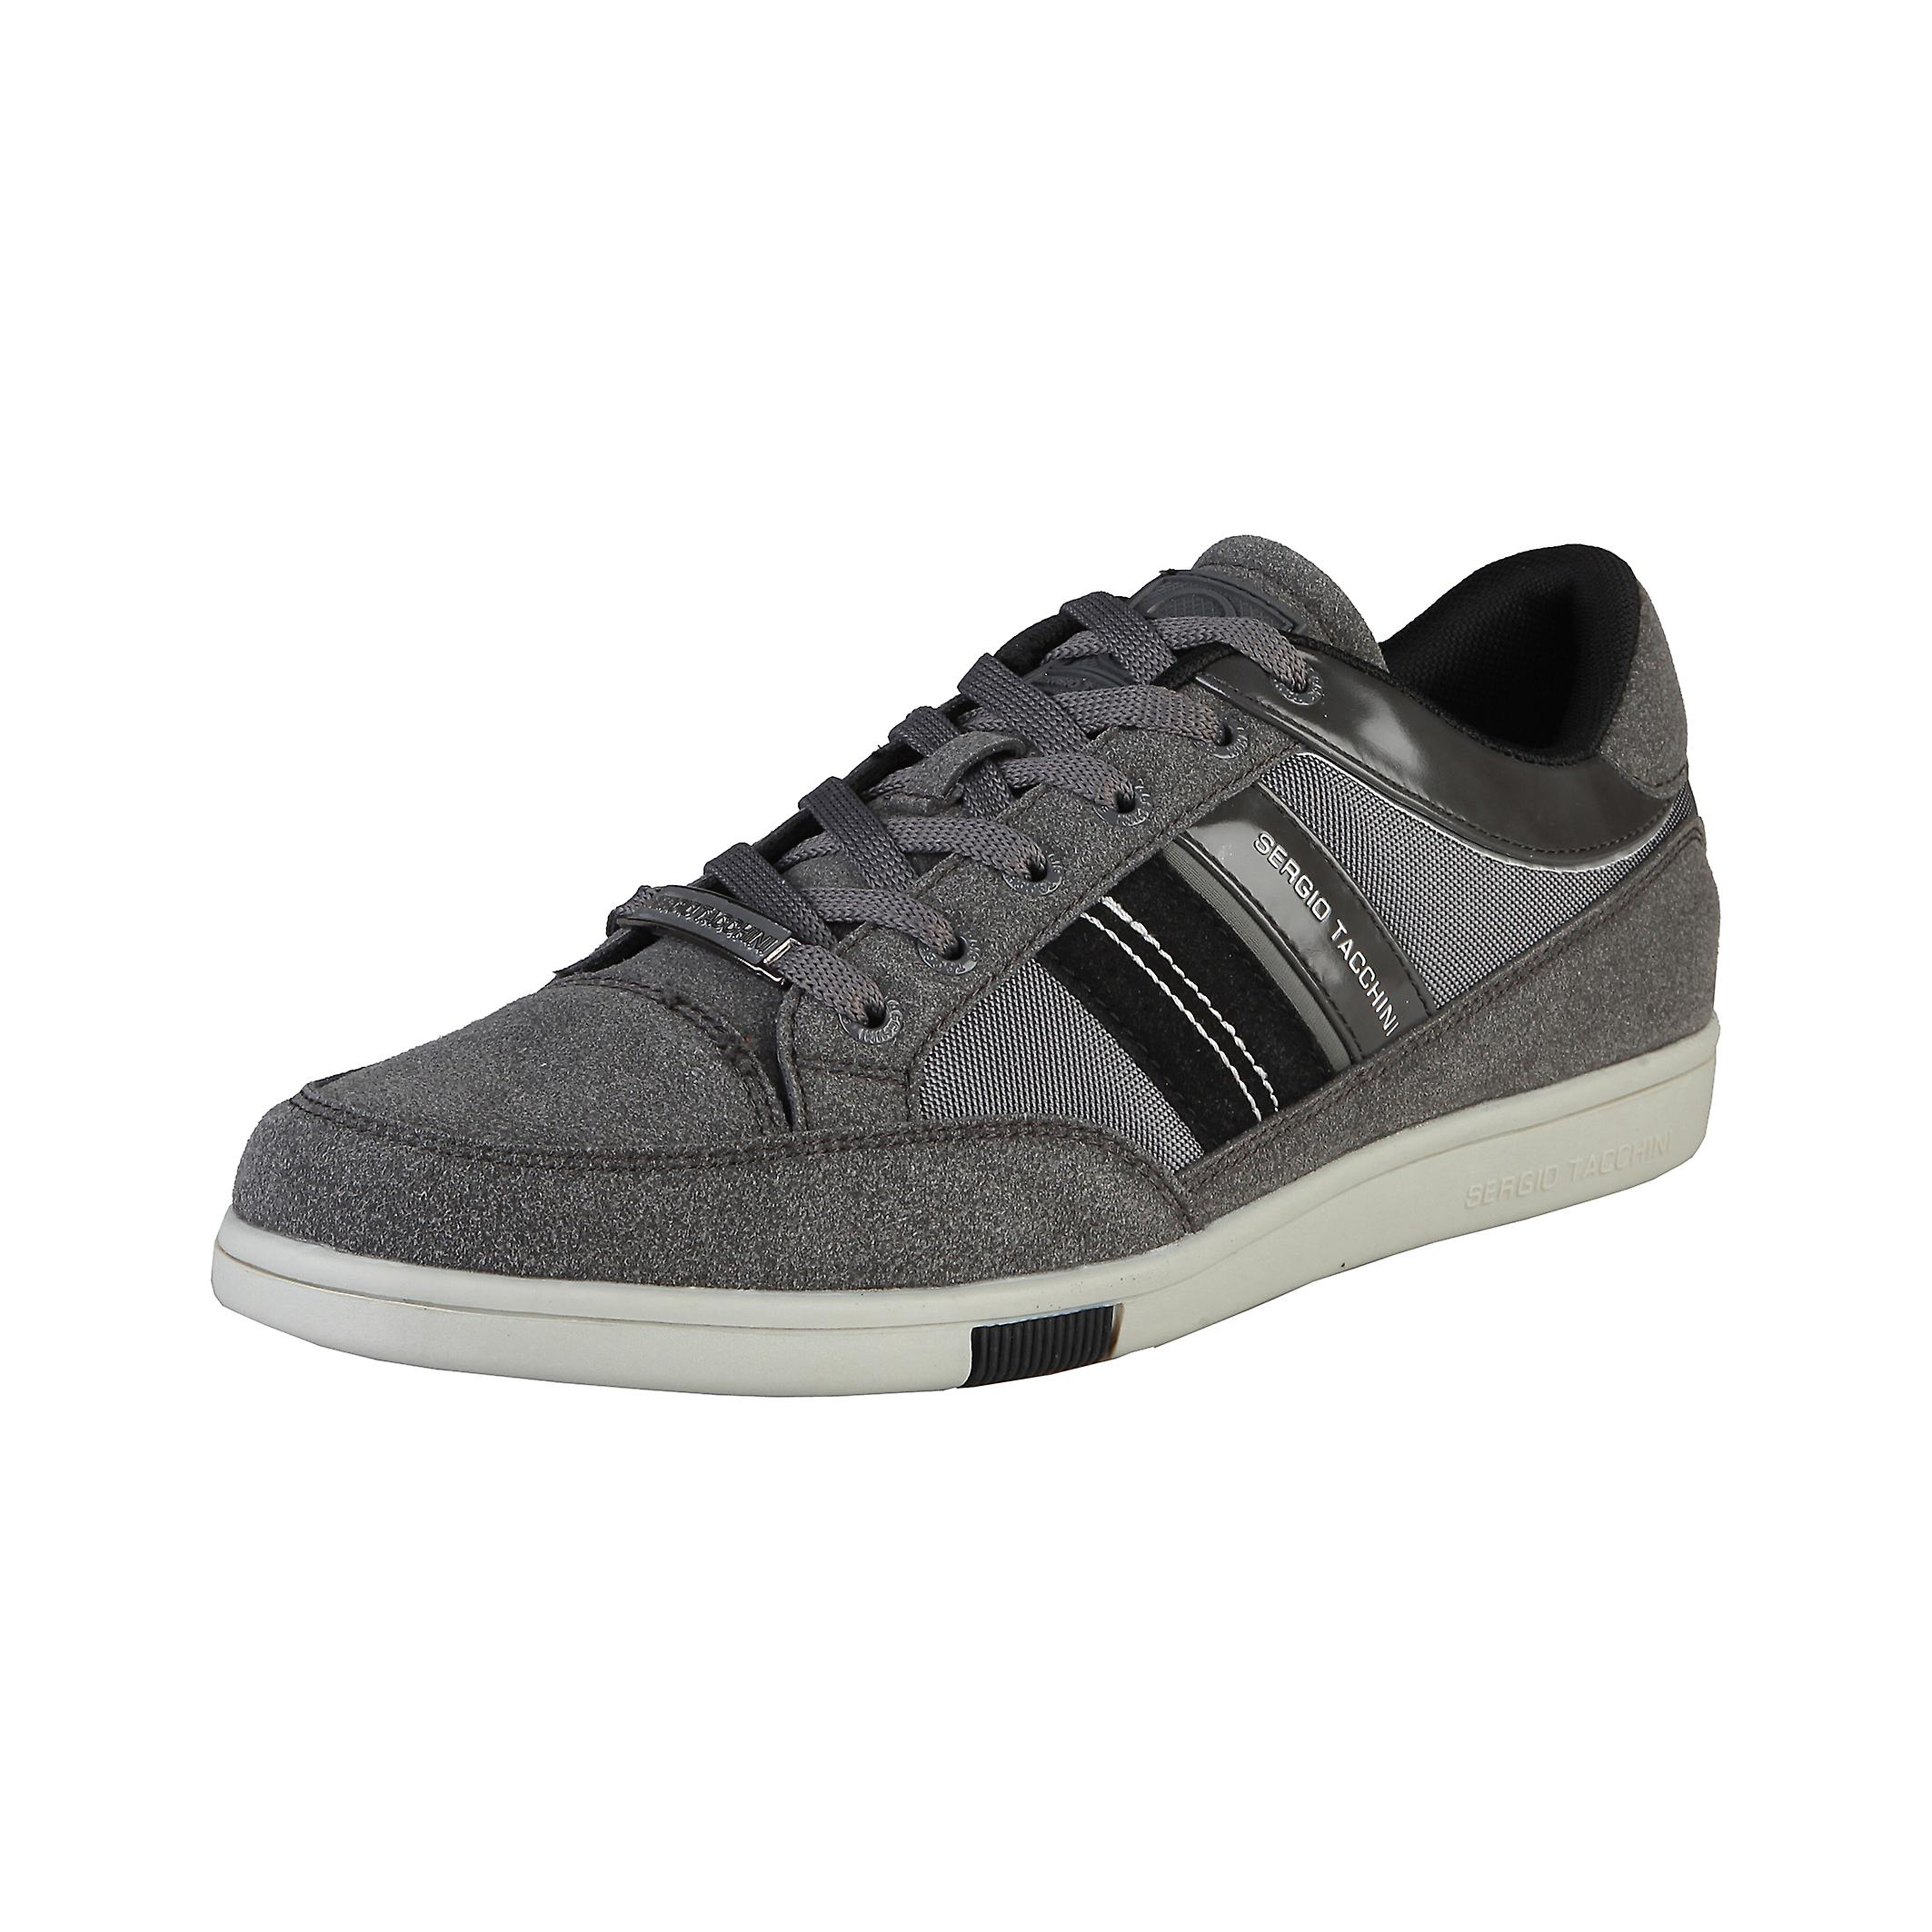 Grey men Grey Tacchini sneakers Tacchini men sneakers F8gqw0nz